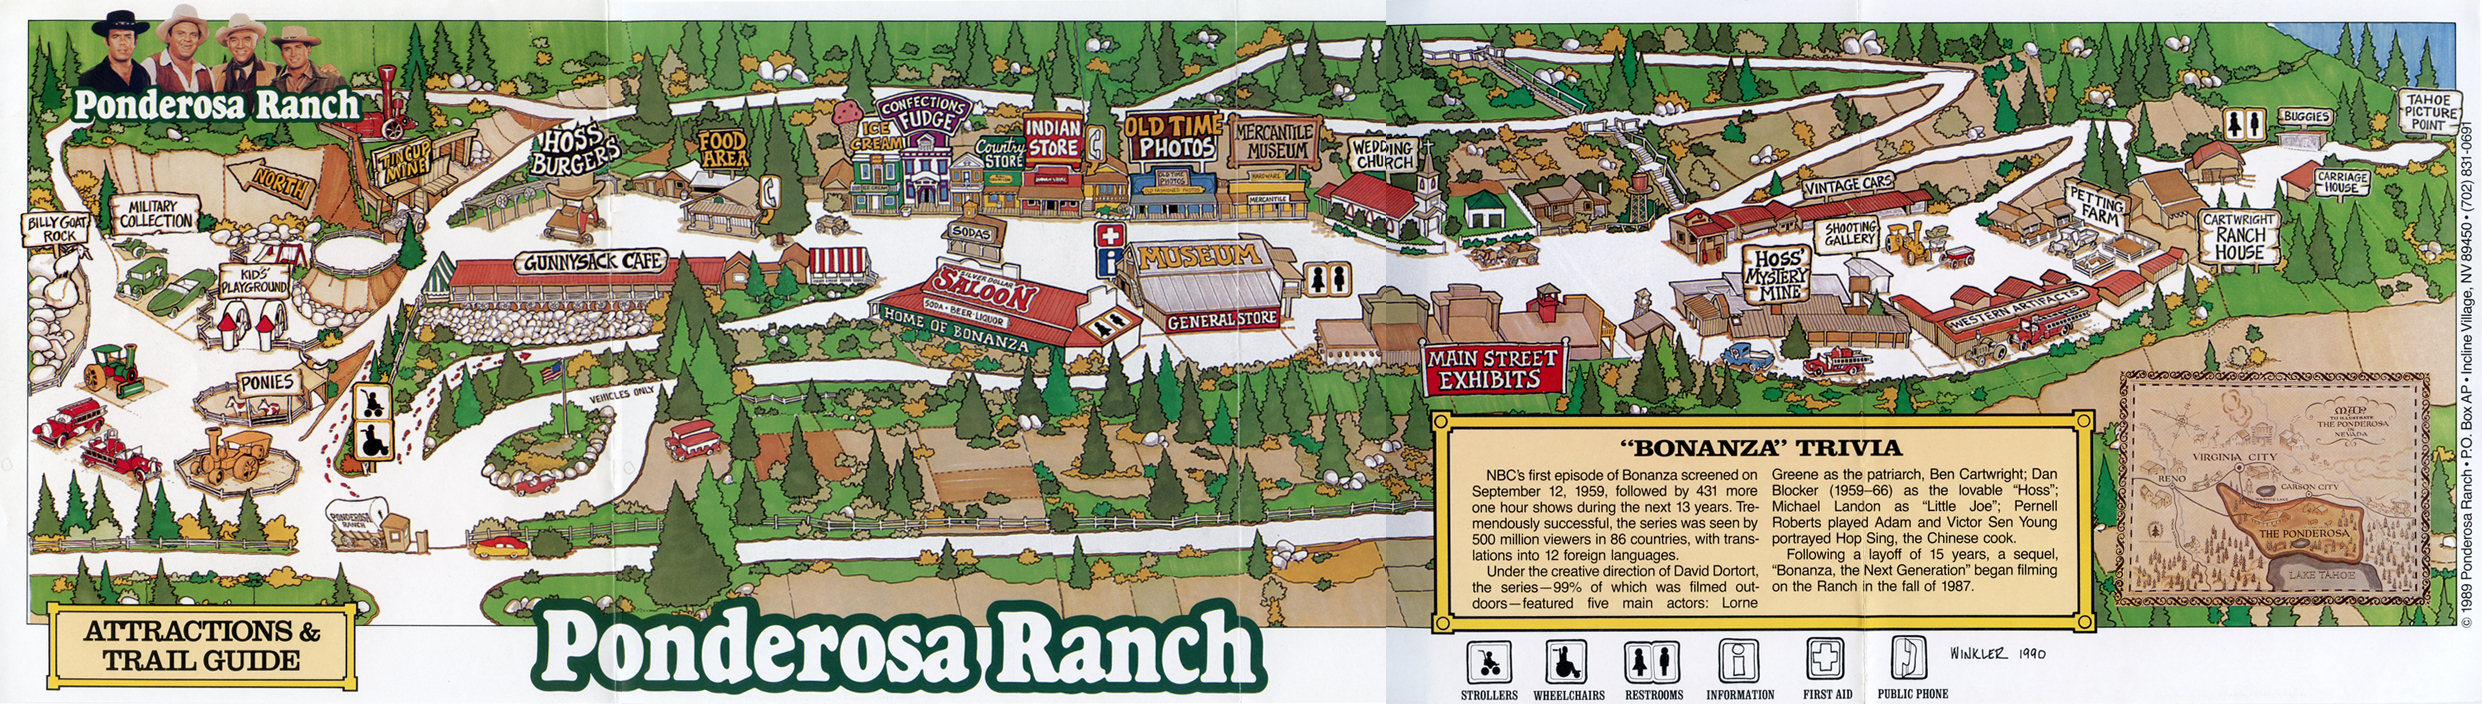 Ponderosa Ranch, Lake Tahoe, Attractions and Trail Guide Map, 1989